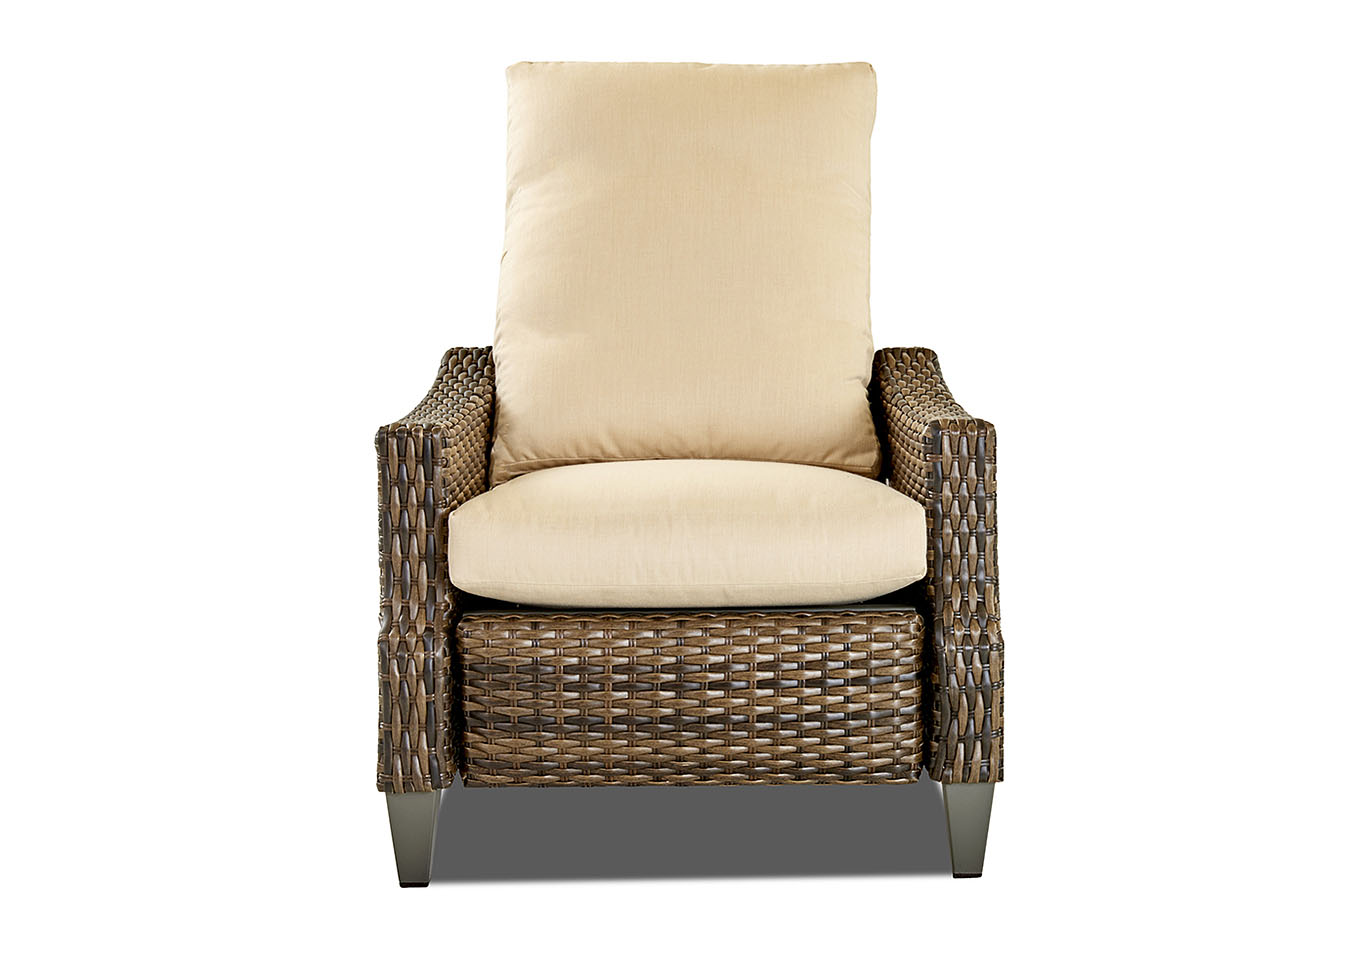 Belmeade Reclining Fabric Chair,Klaussner Home Furnishings